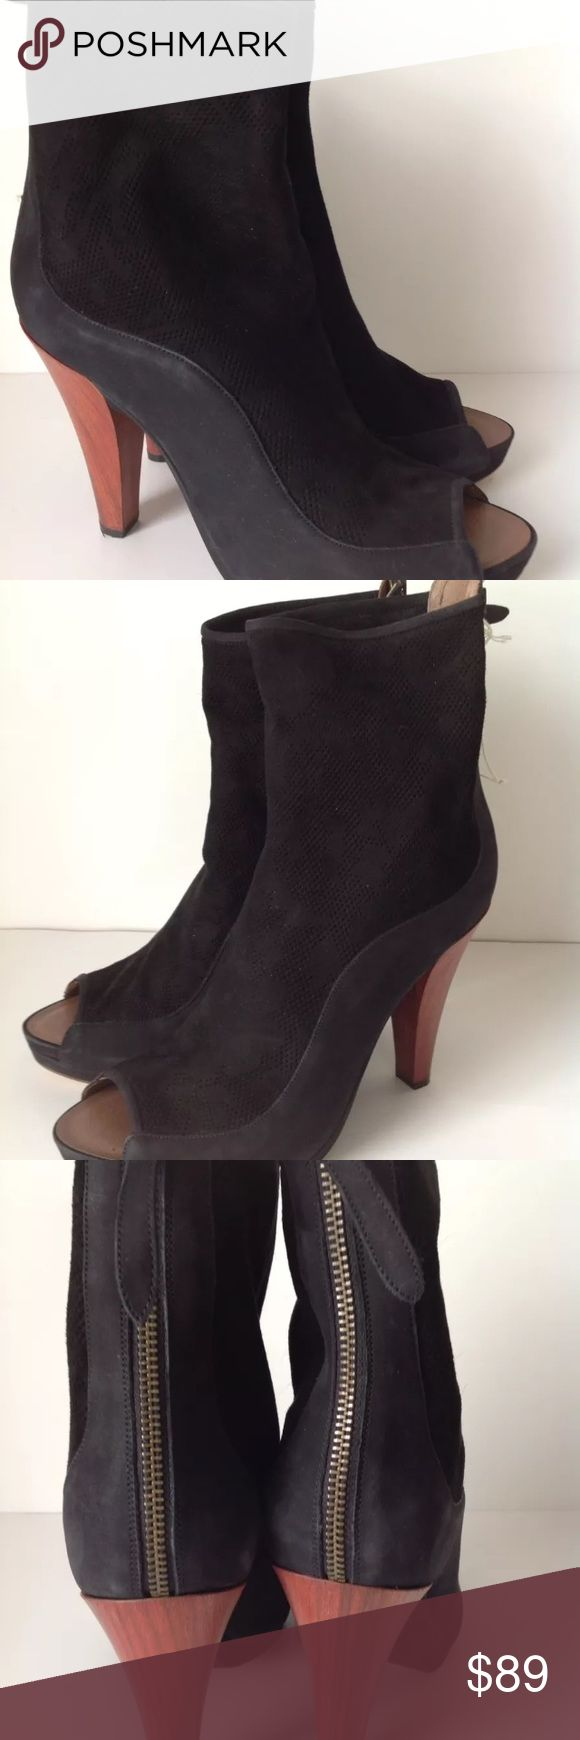 """UGG Australia Anatea Black Suede Heels Sz 9.5 UGG Italian collection. Two dust bags included. New without box. Heel zip closure Stacked wood heel approx. 4"""" UGG Shoes Heels"""